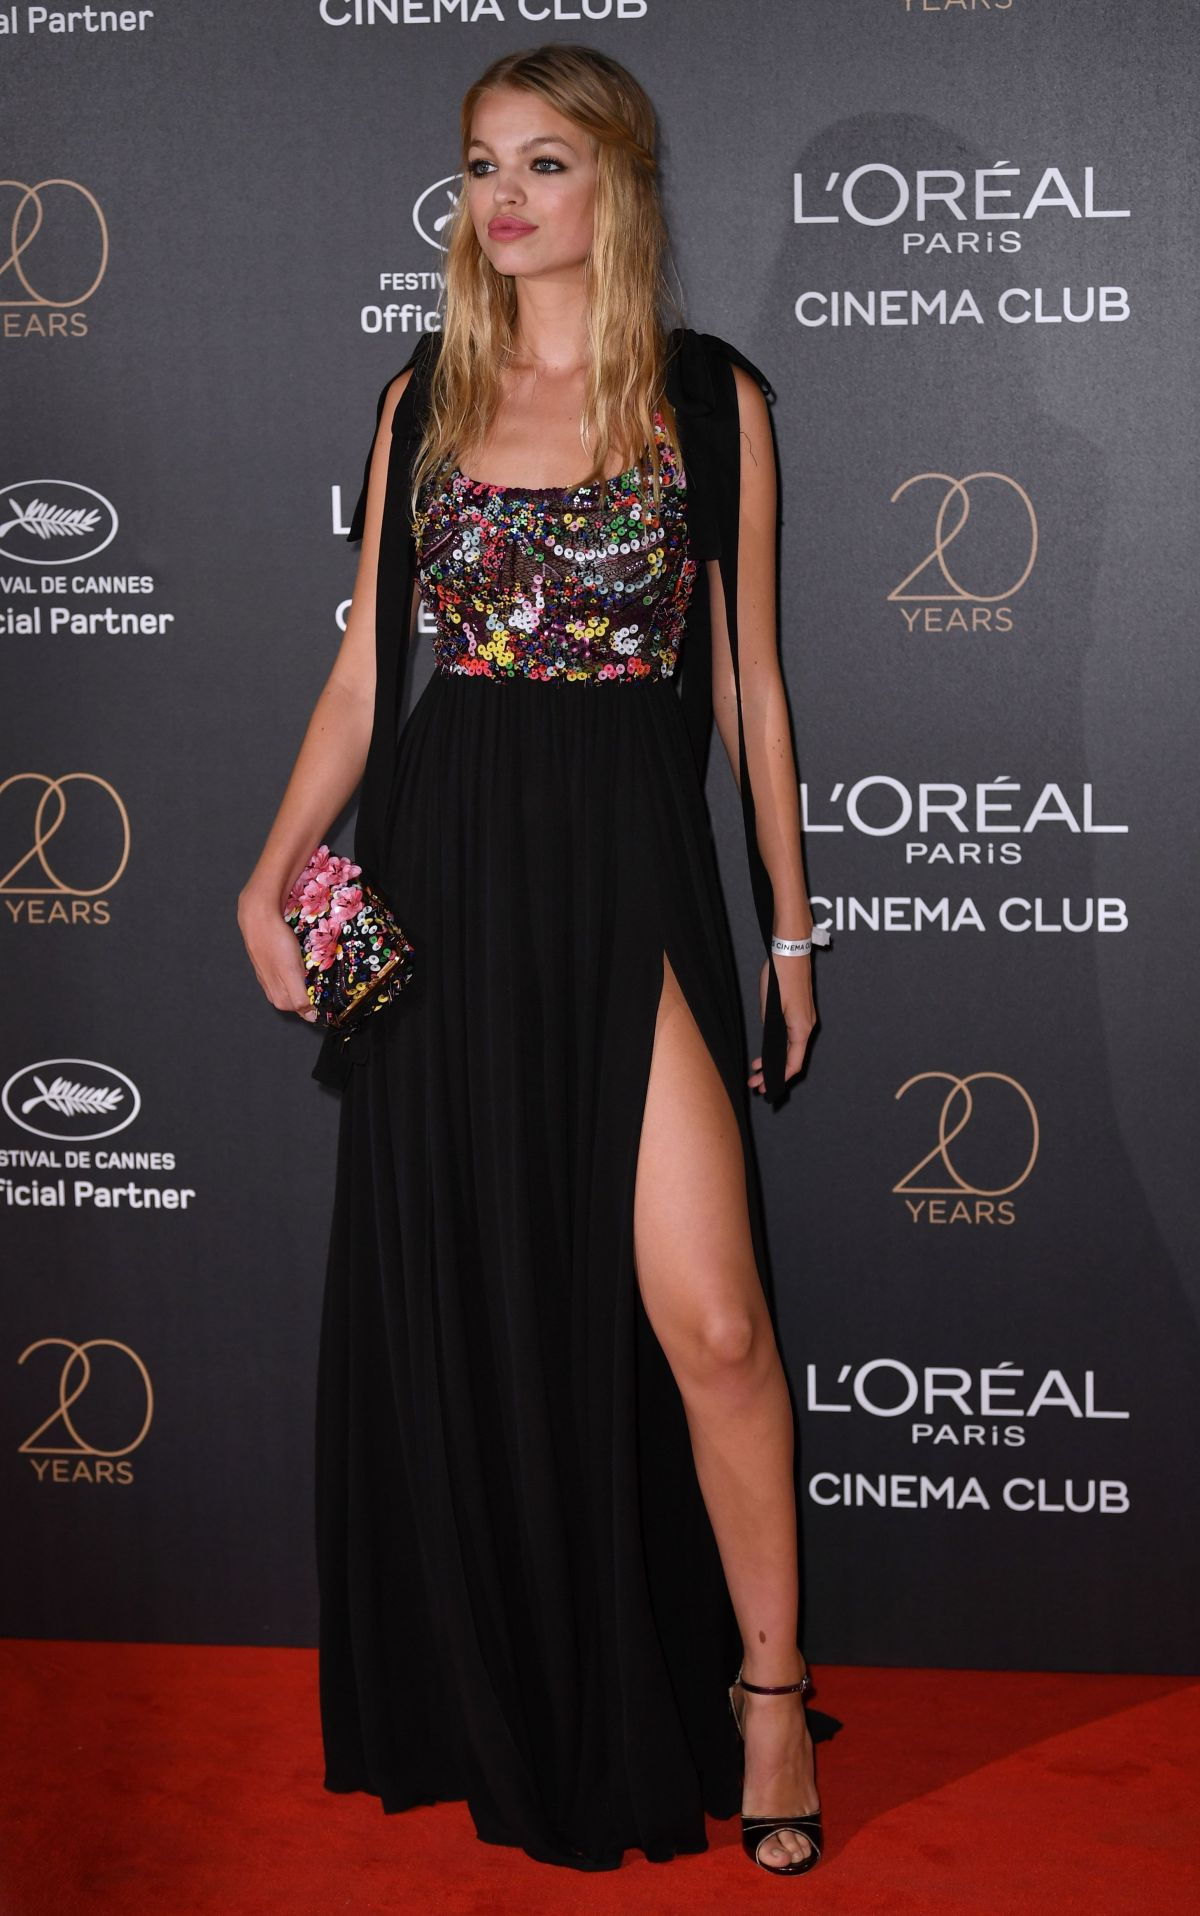 DAPHNE GROENEVELD at L'Oreal 20th Anniversary Party at Cannes Film Festival 05/24/2017